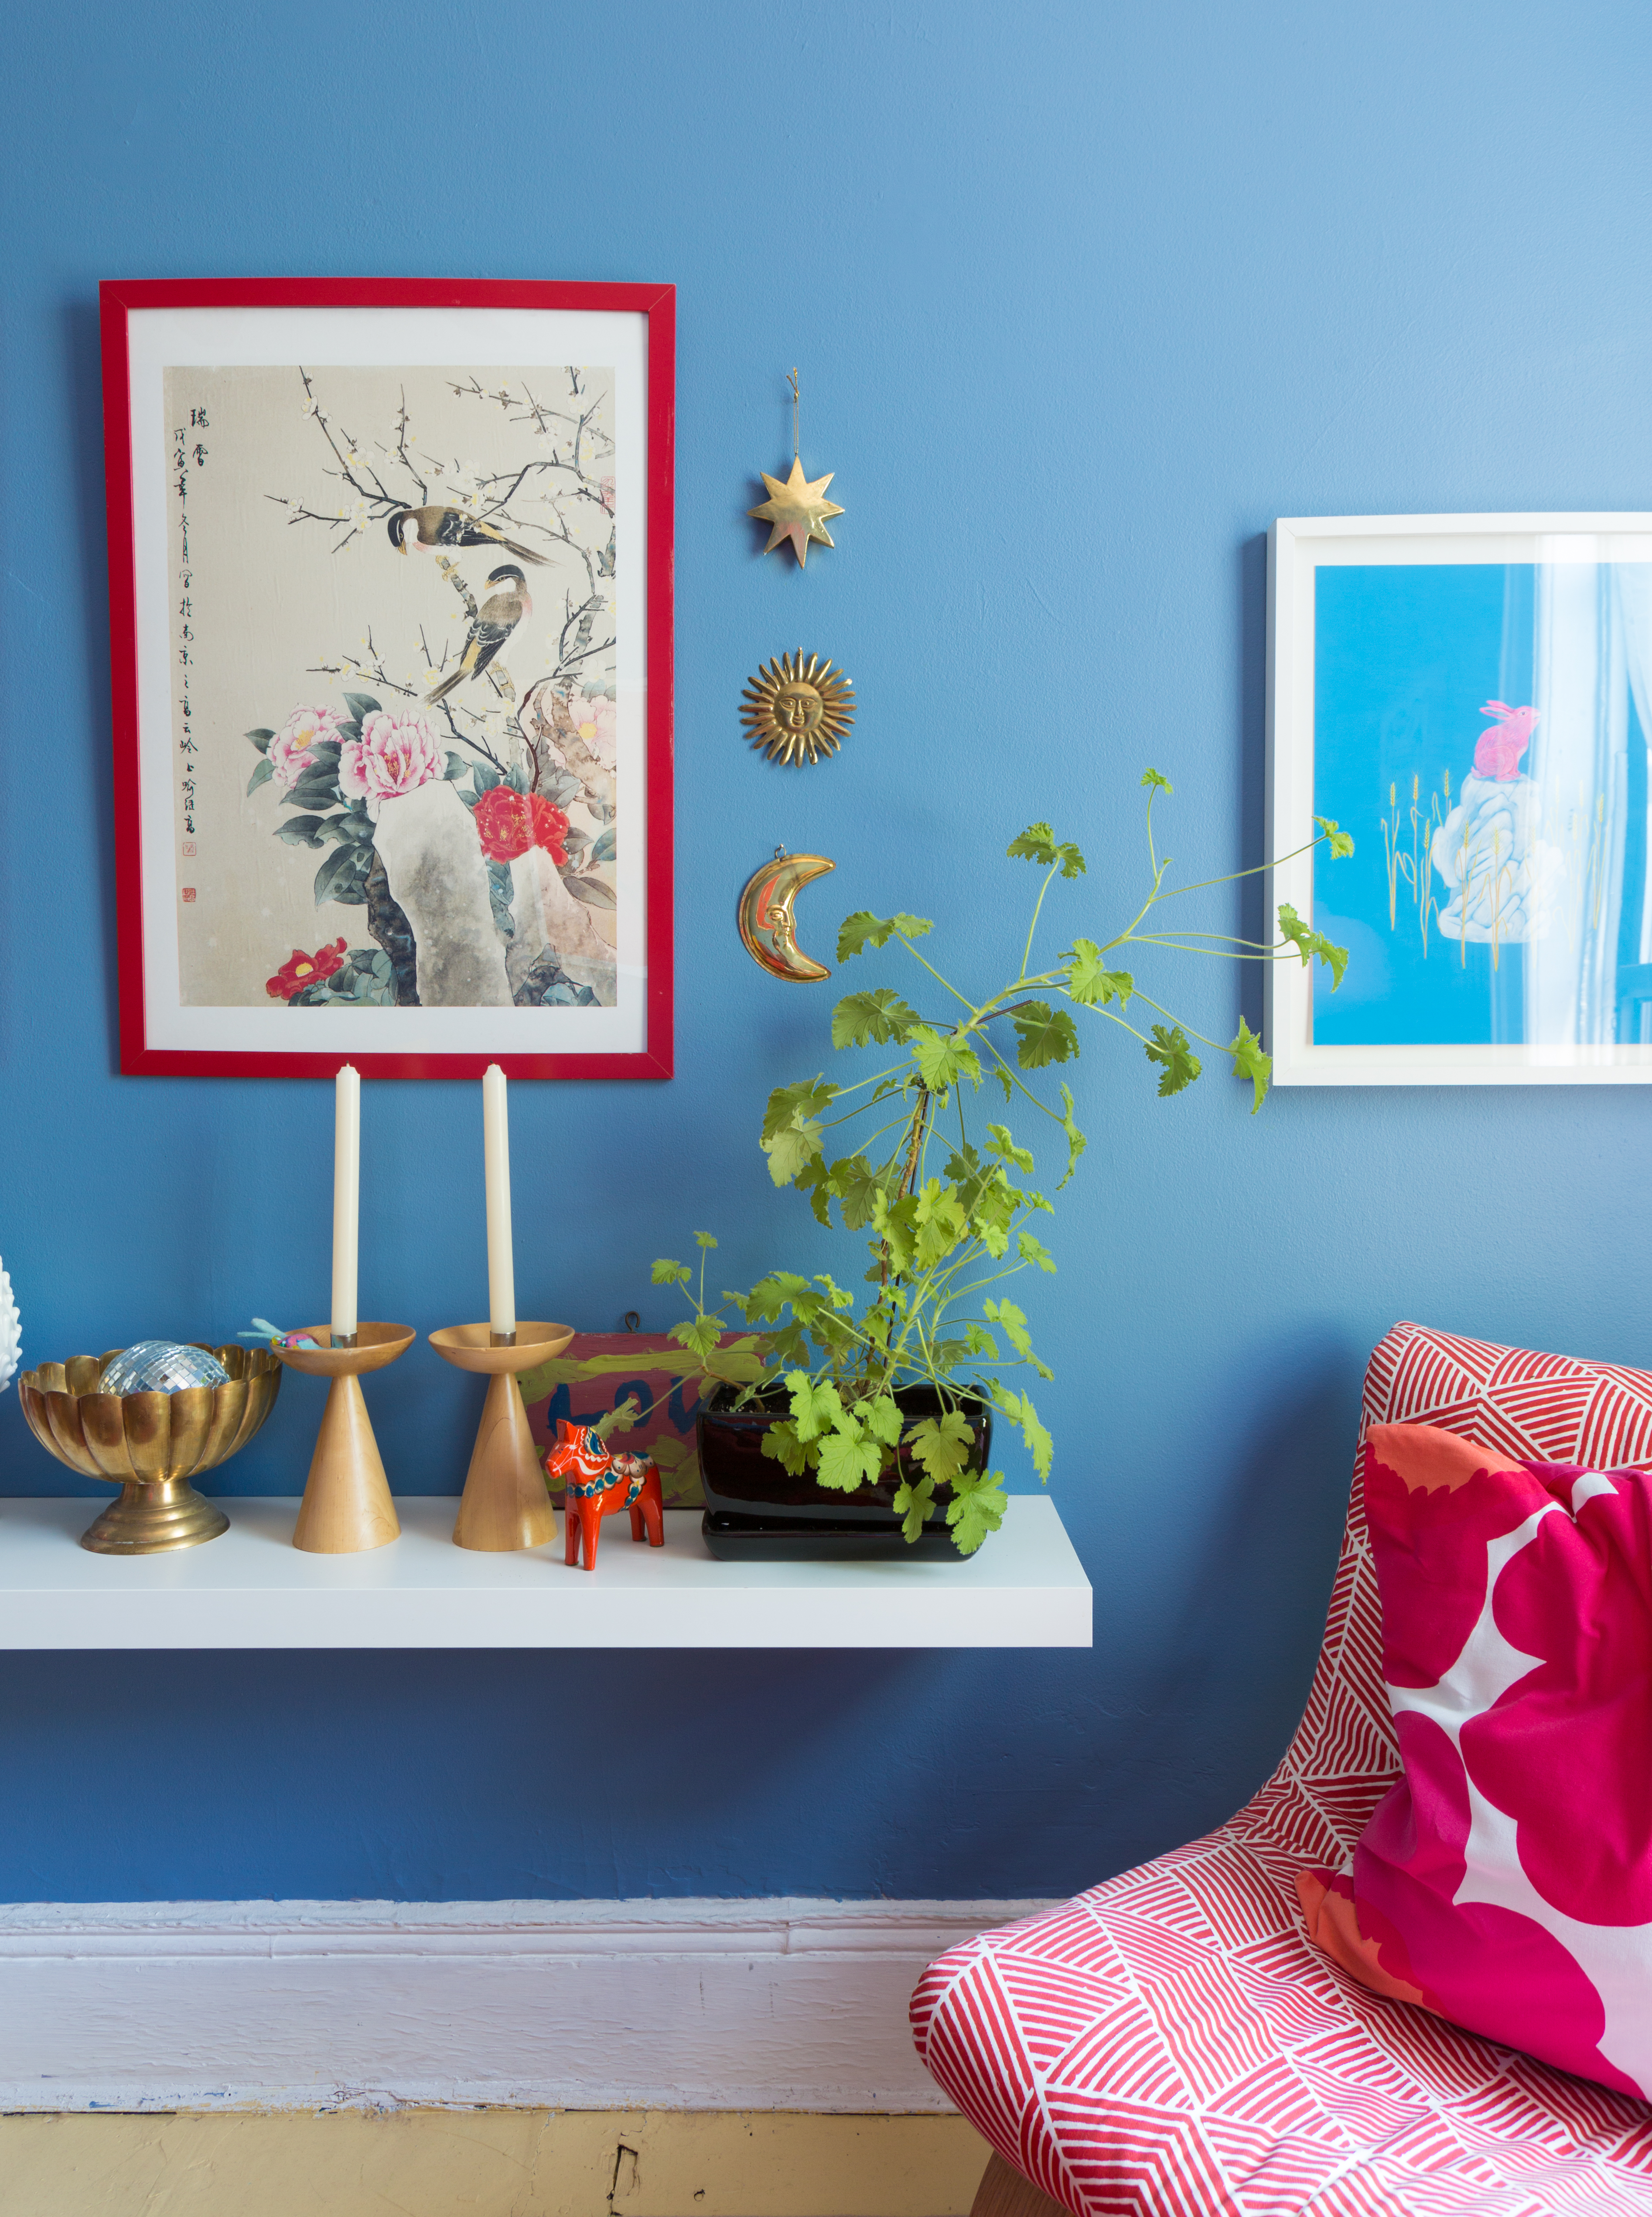 8 Best Wall Color Paint Apps To Visualize Color Changes Apartment Therapy,Blue Painted Ceiling Ideas